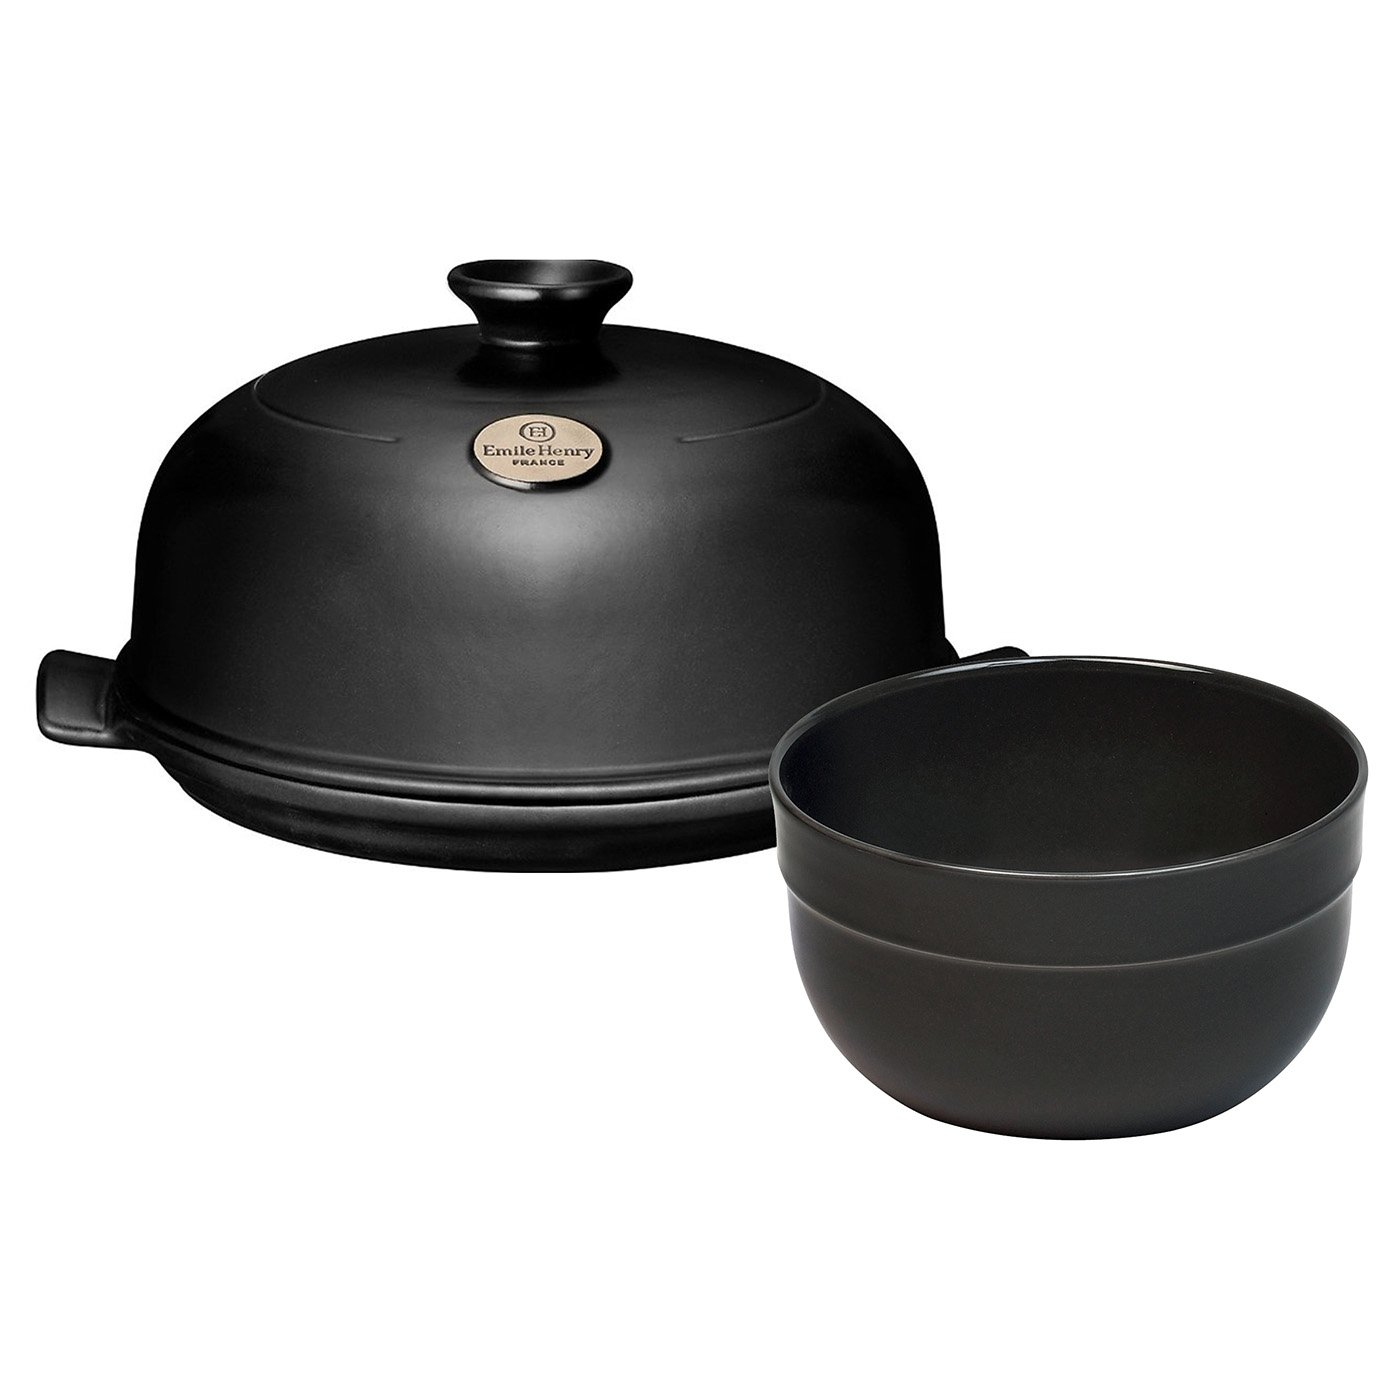 2 Piece Bread Cloche and Mixing Bowl Color: Charcoal